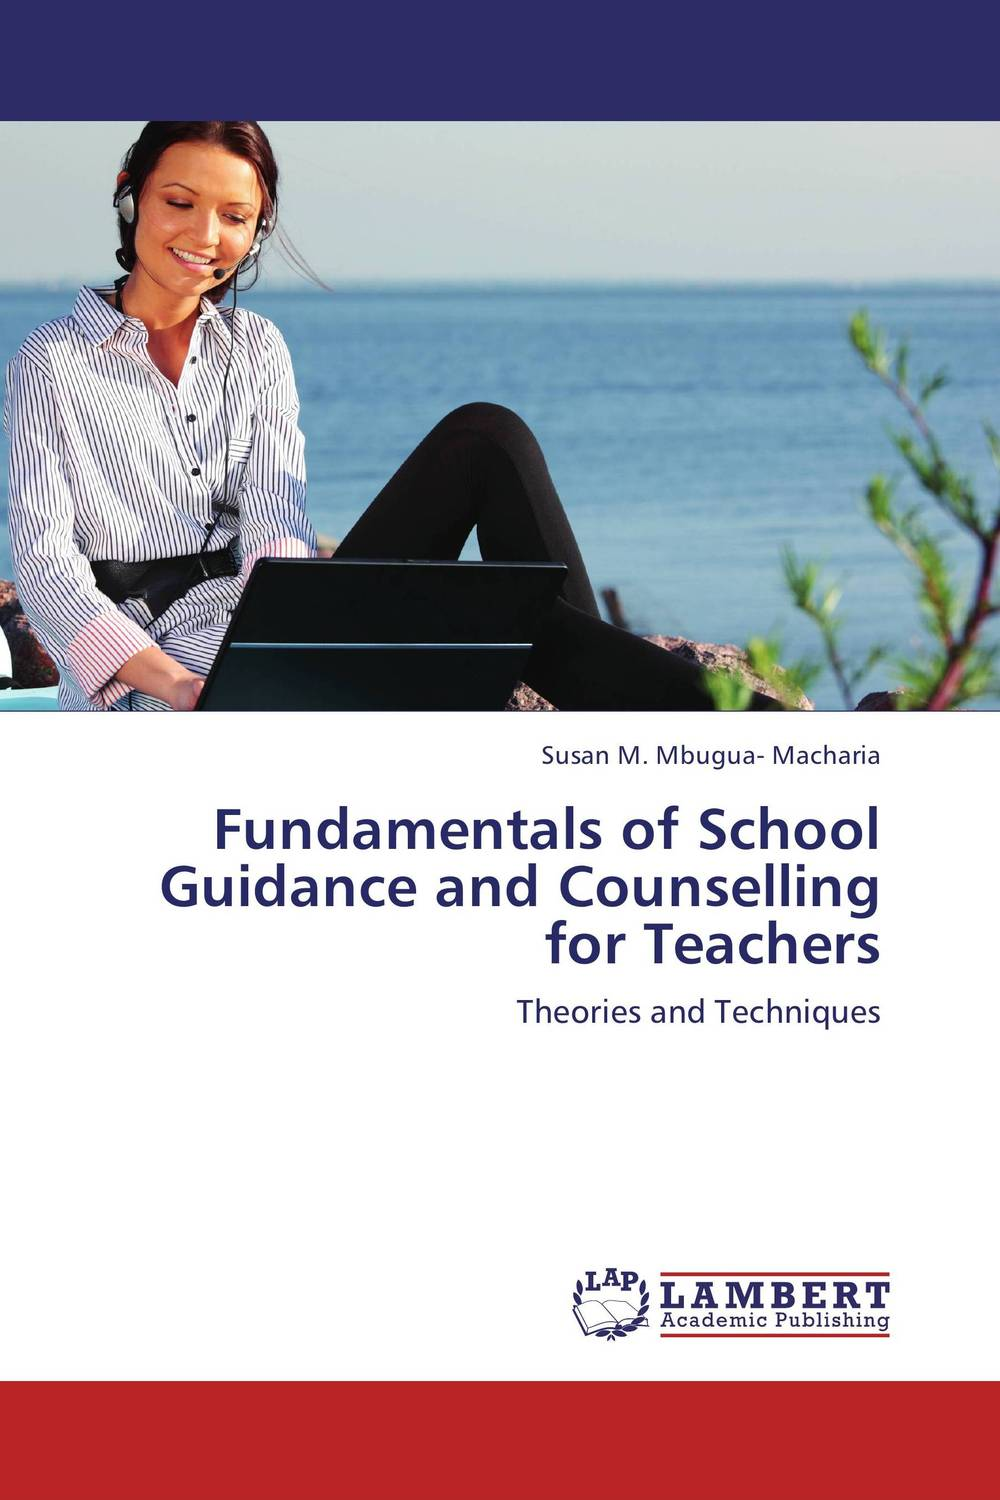 Fundamentals of School Guidance and Counselling for Teachers fundamentals of physics extended 9th edition international student version with wileyplus set